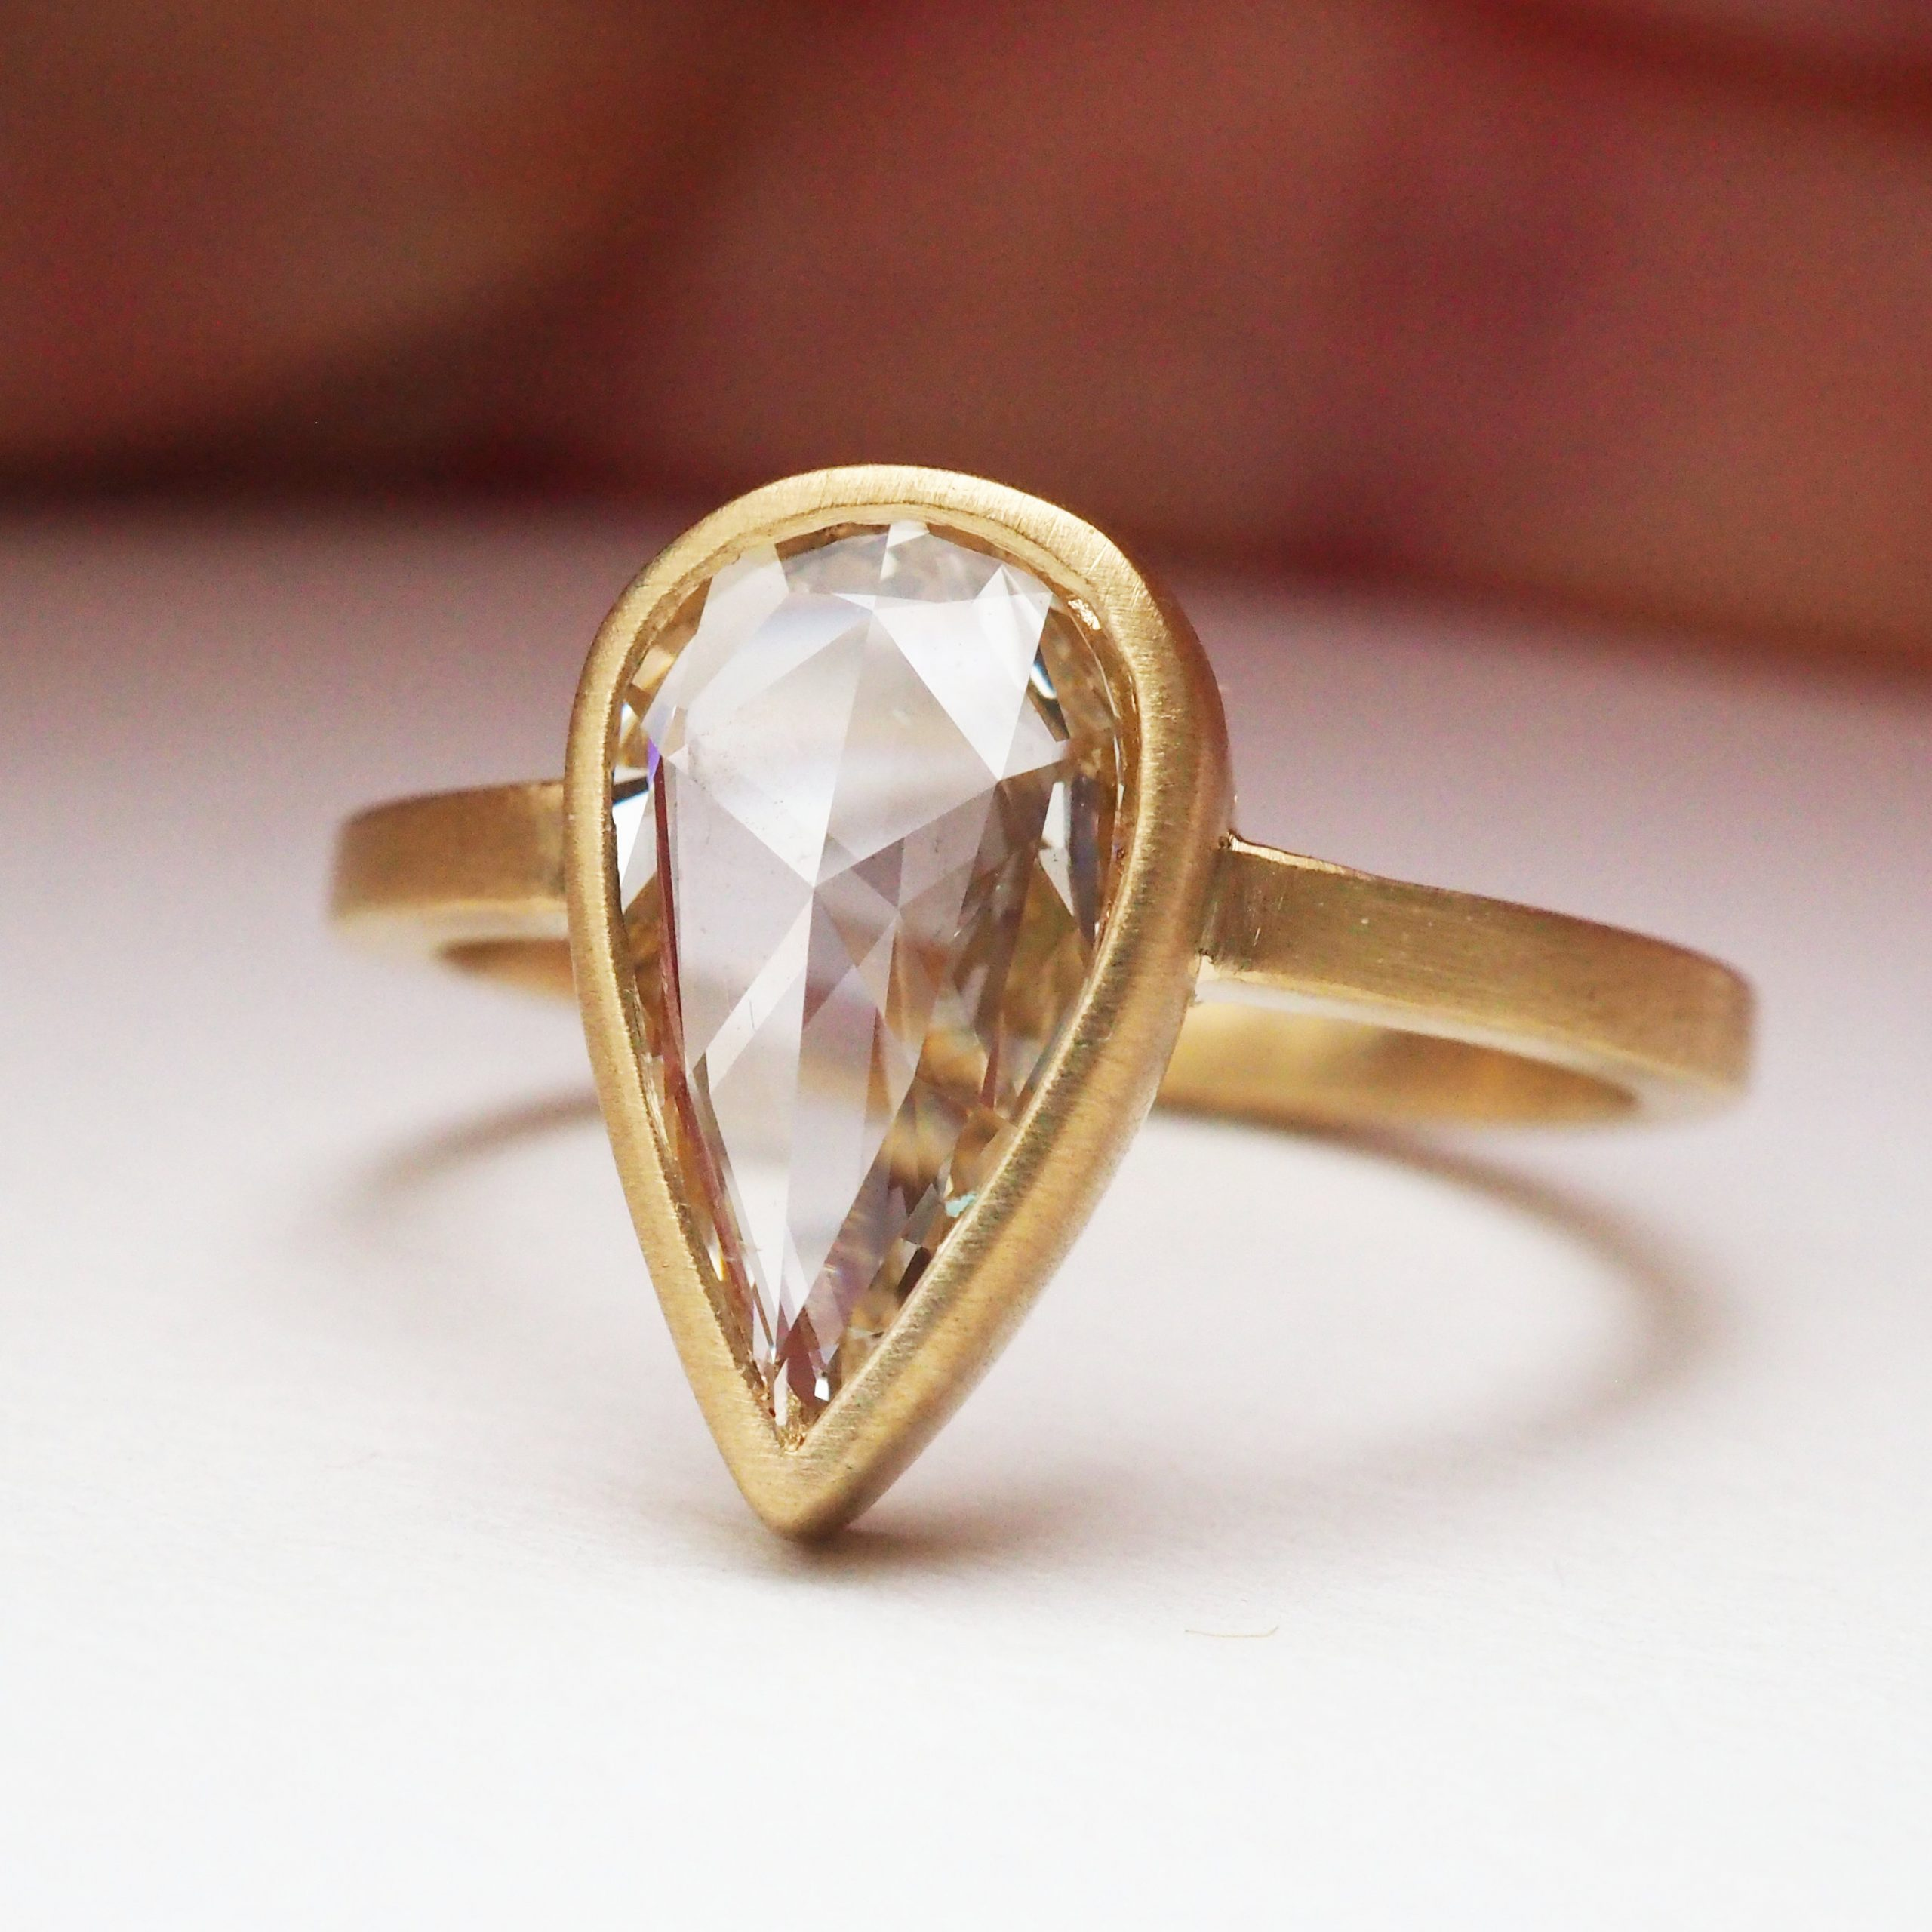 Rose Cut Pear Diamond Engagement Ring